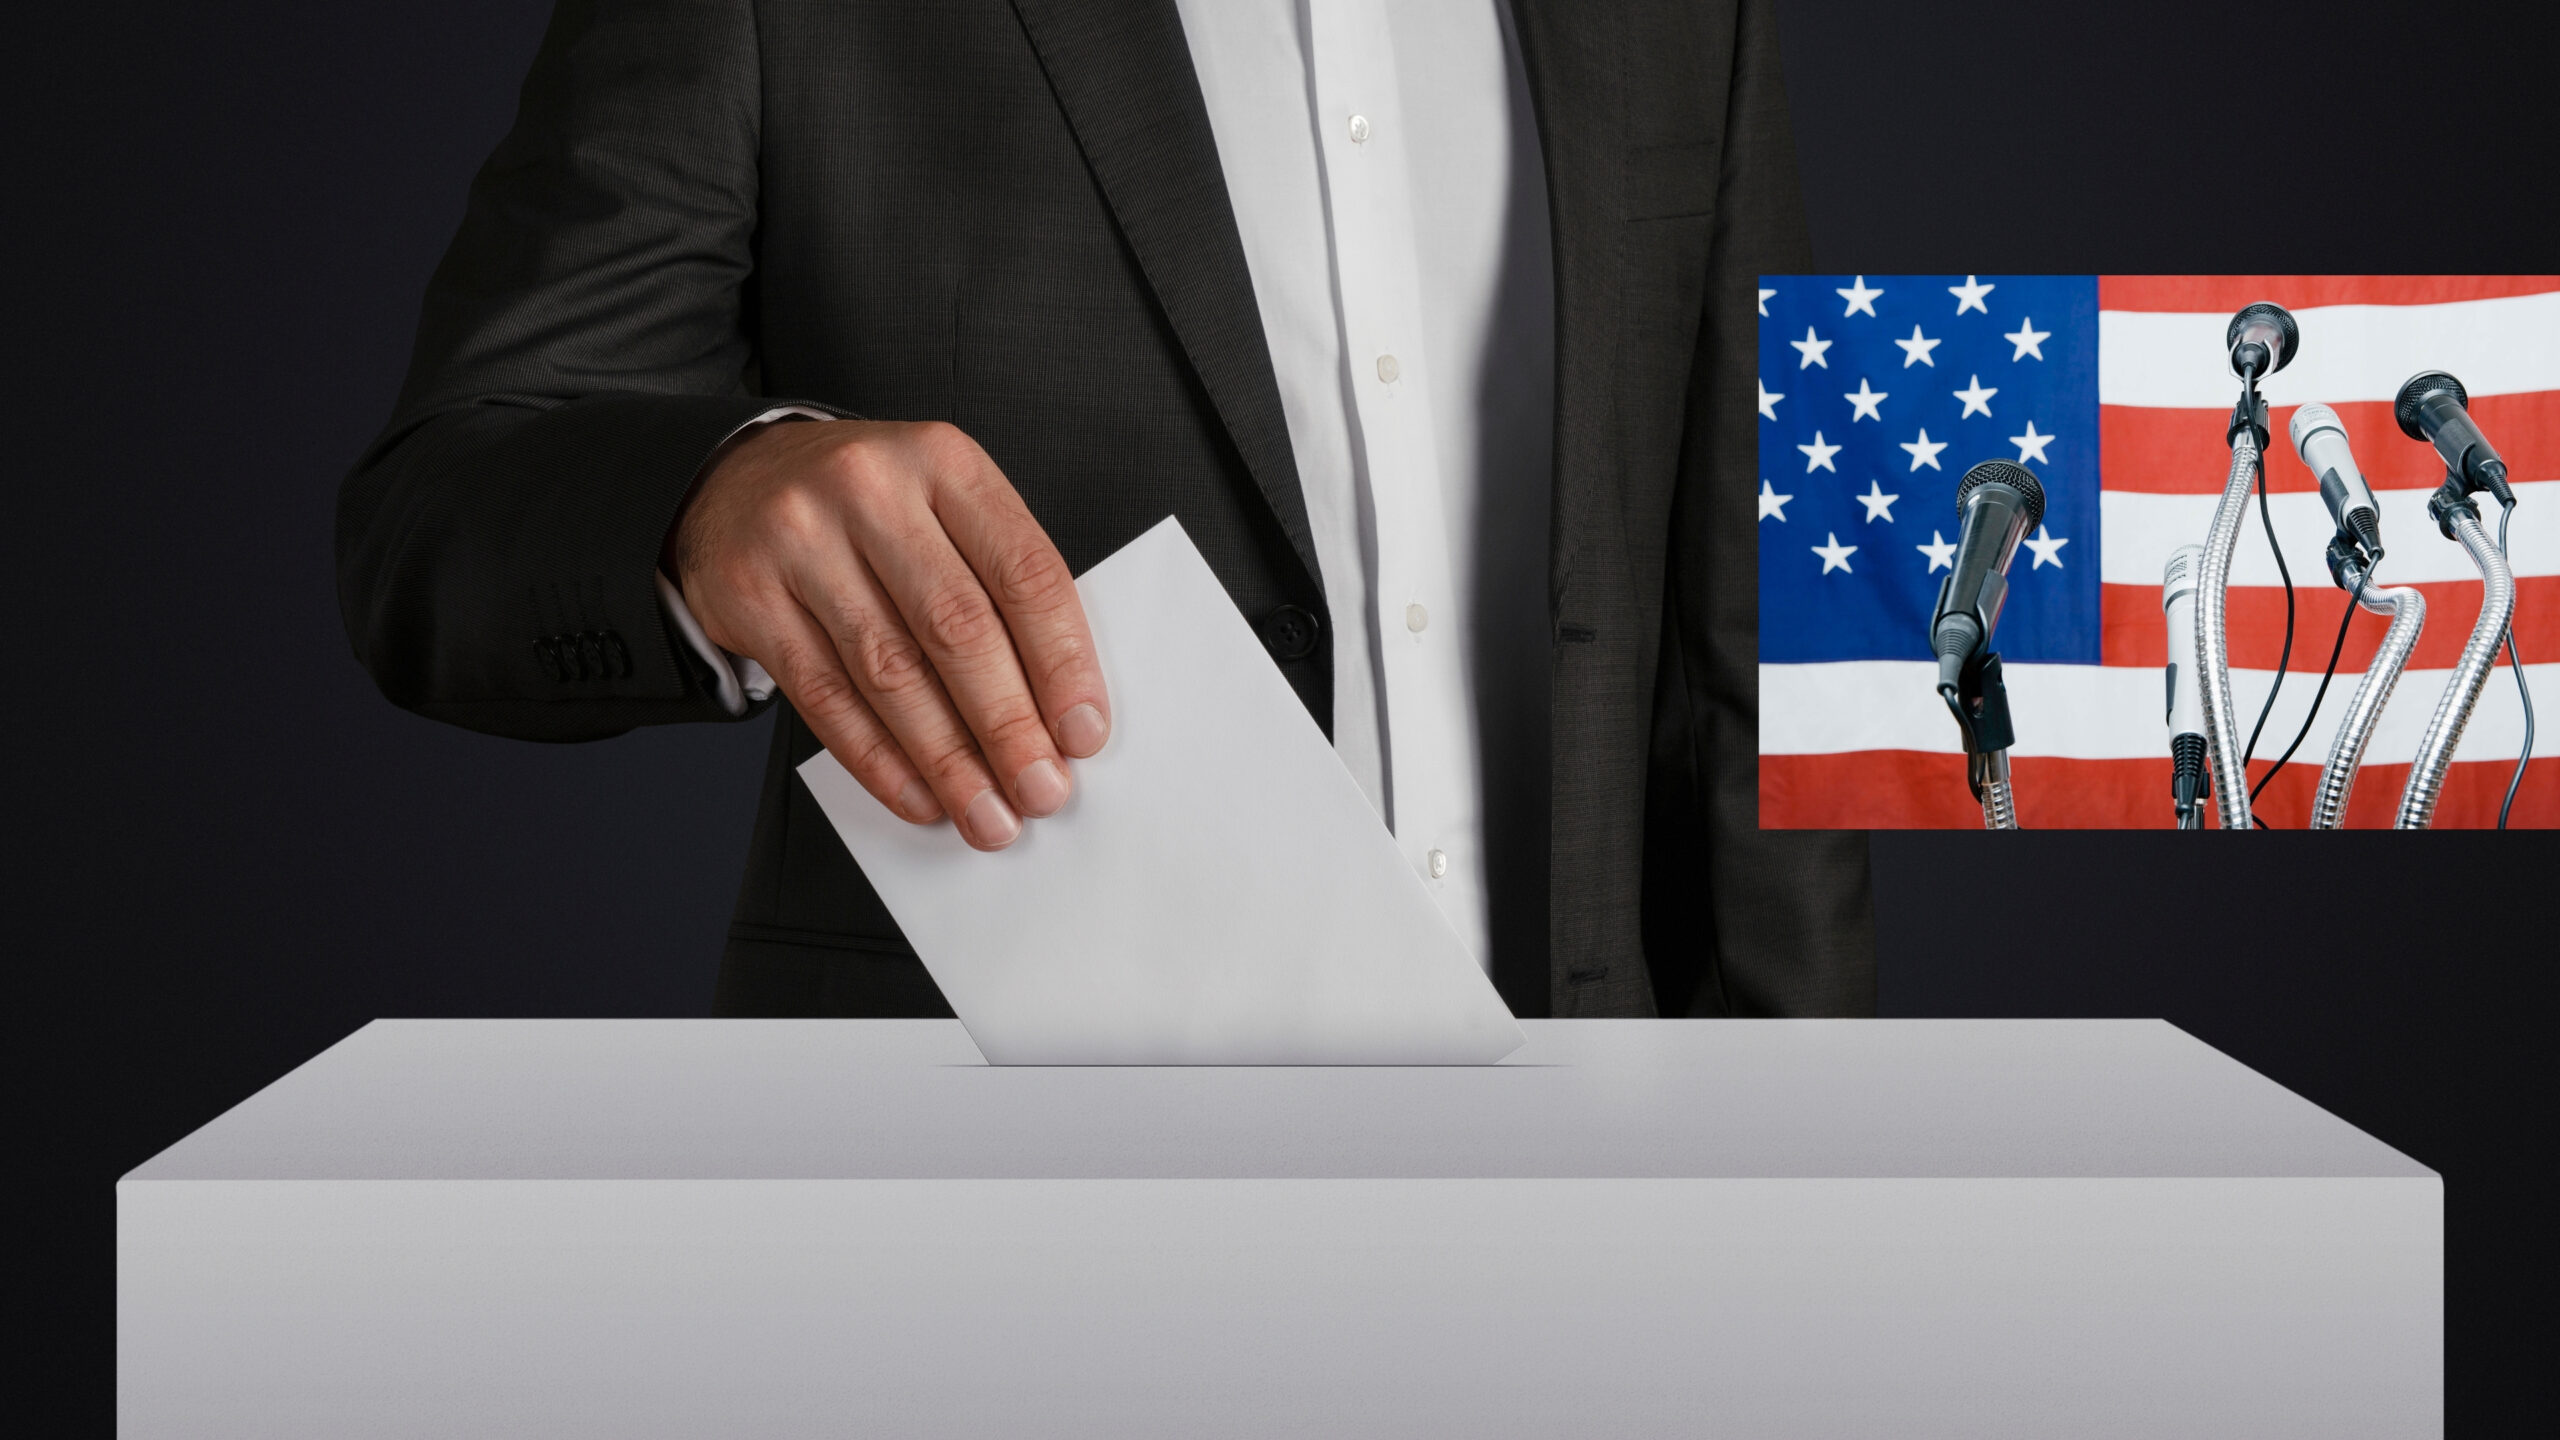 Presidential elections in US